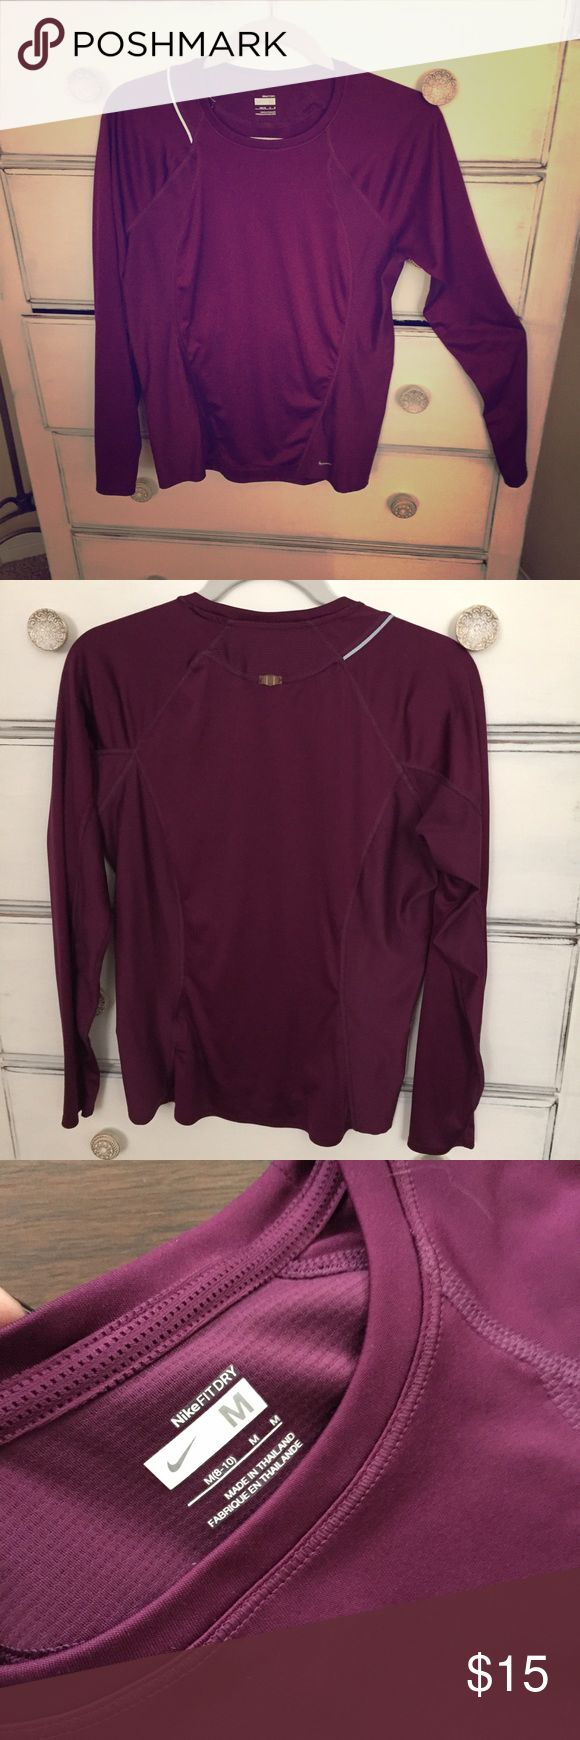 Purple Women's Nike Fit Dry L/S shirt, size Med Nike women's Fit Dry long sleeve t/shirt. Gorgeous purple w/ gray logo & decorative piping. Body: 100% poly, mesh side & sleeve panels: 76% poly, 24% spandex. Super breathable and comfy! Wicks sweat away so you don't smell like a foot when you run into the cutie at the juice bar after your workout. I may have worn it once. I'm not really sure. I don't remember ever wearing it and it looks new. Maybe if you buy it, I can get in shape vicariously…